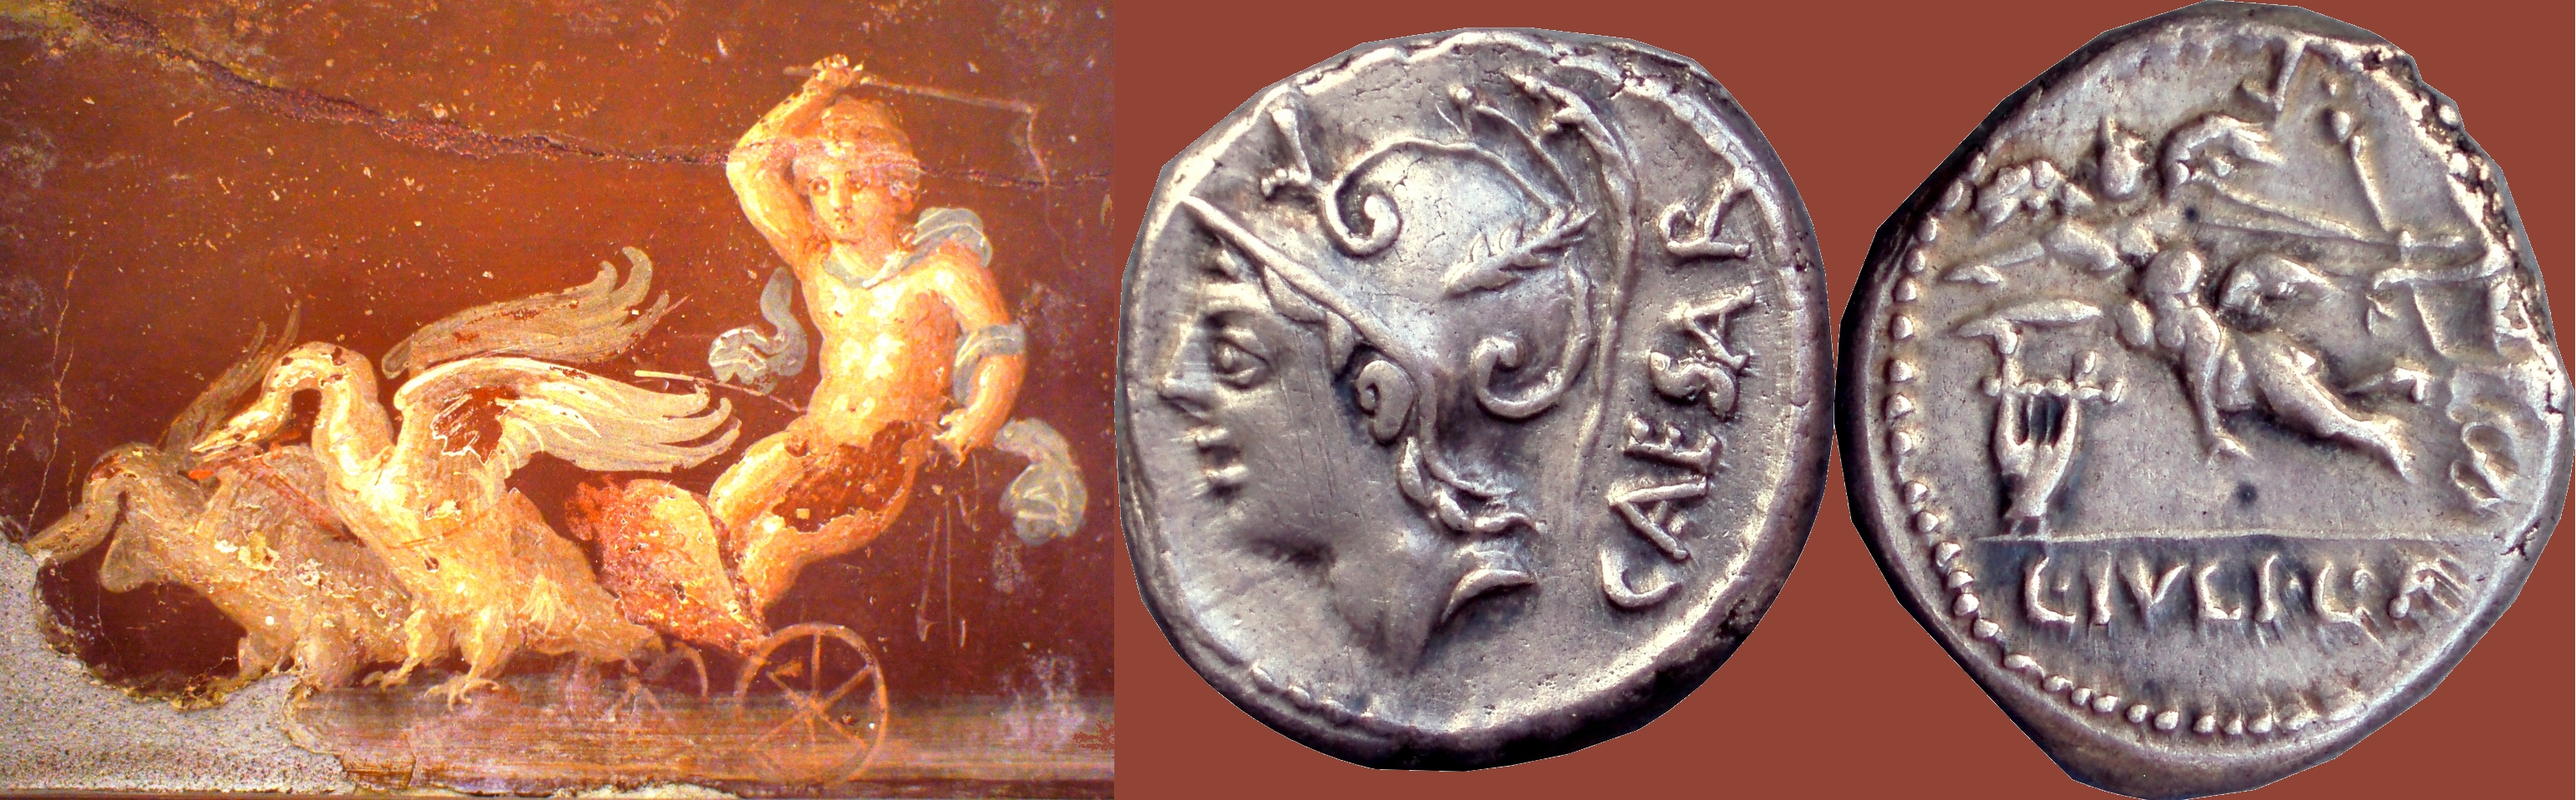 320/1 coin with Venus and a Biga of Cupids, 103BC, with miniature painting of Cupid and a Biga of Swans from Pompeii